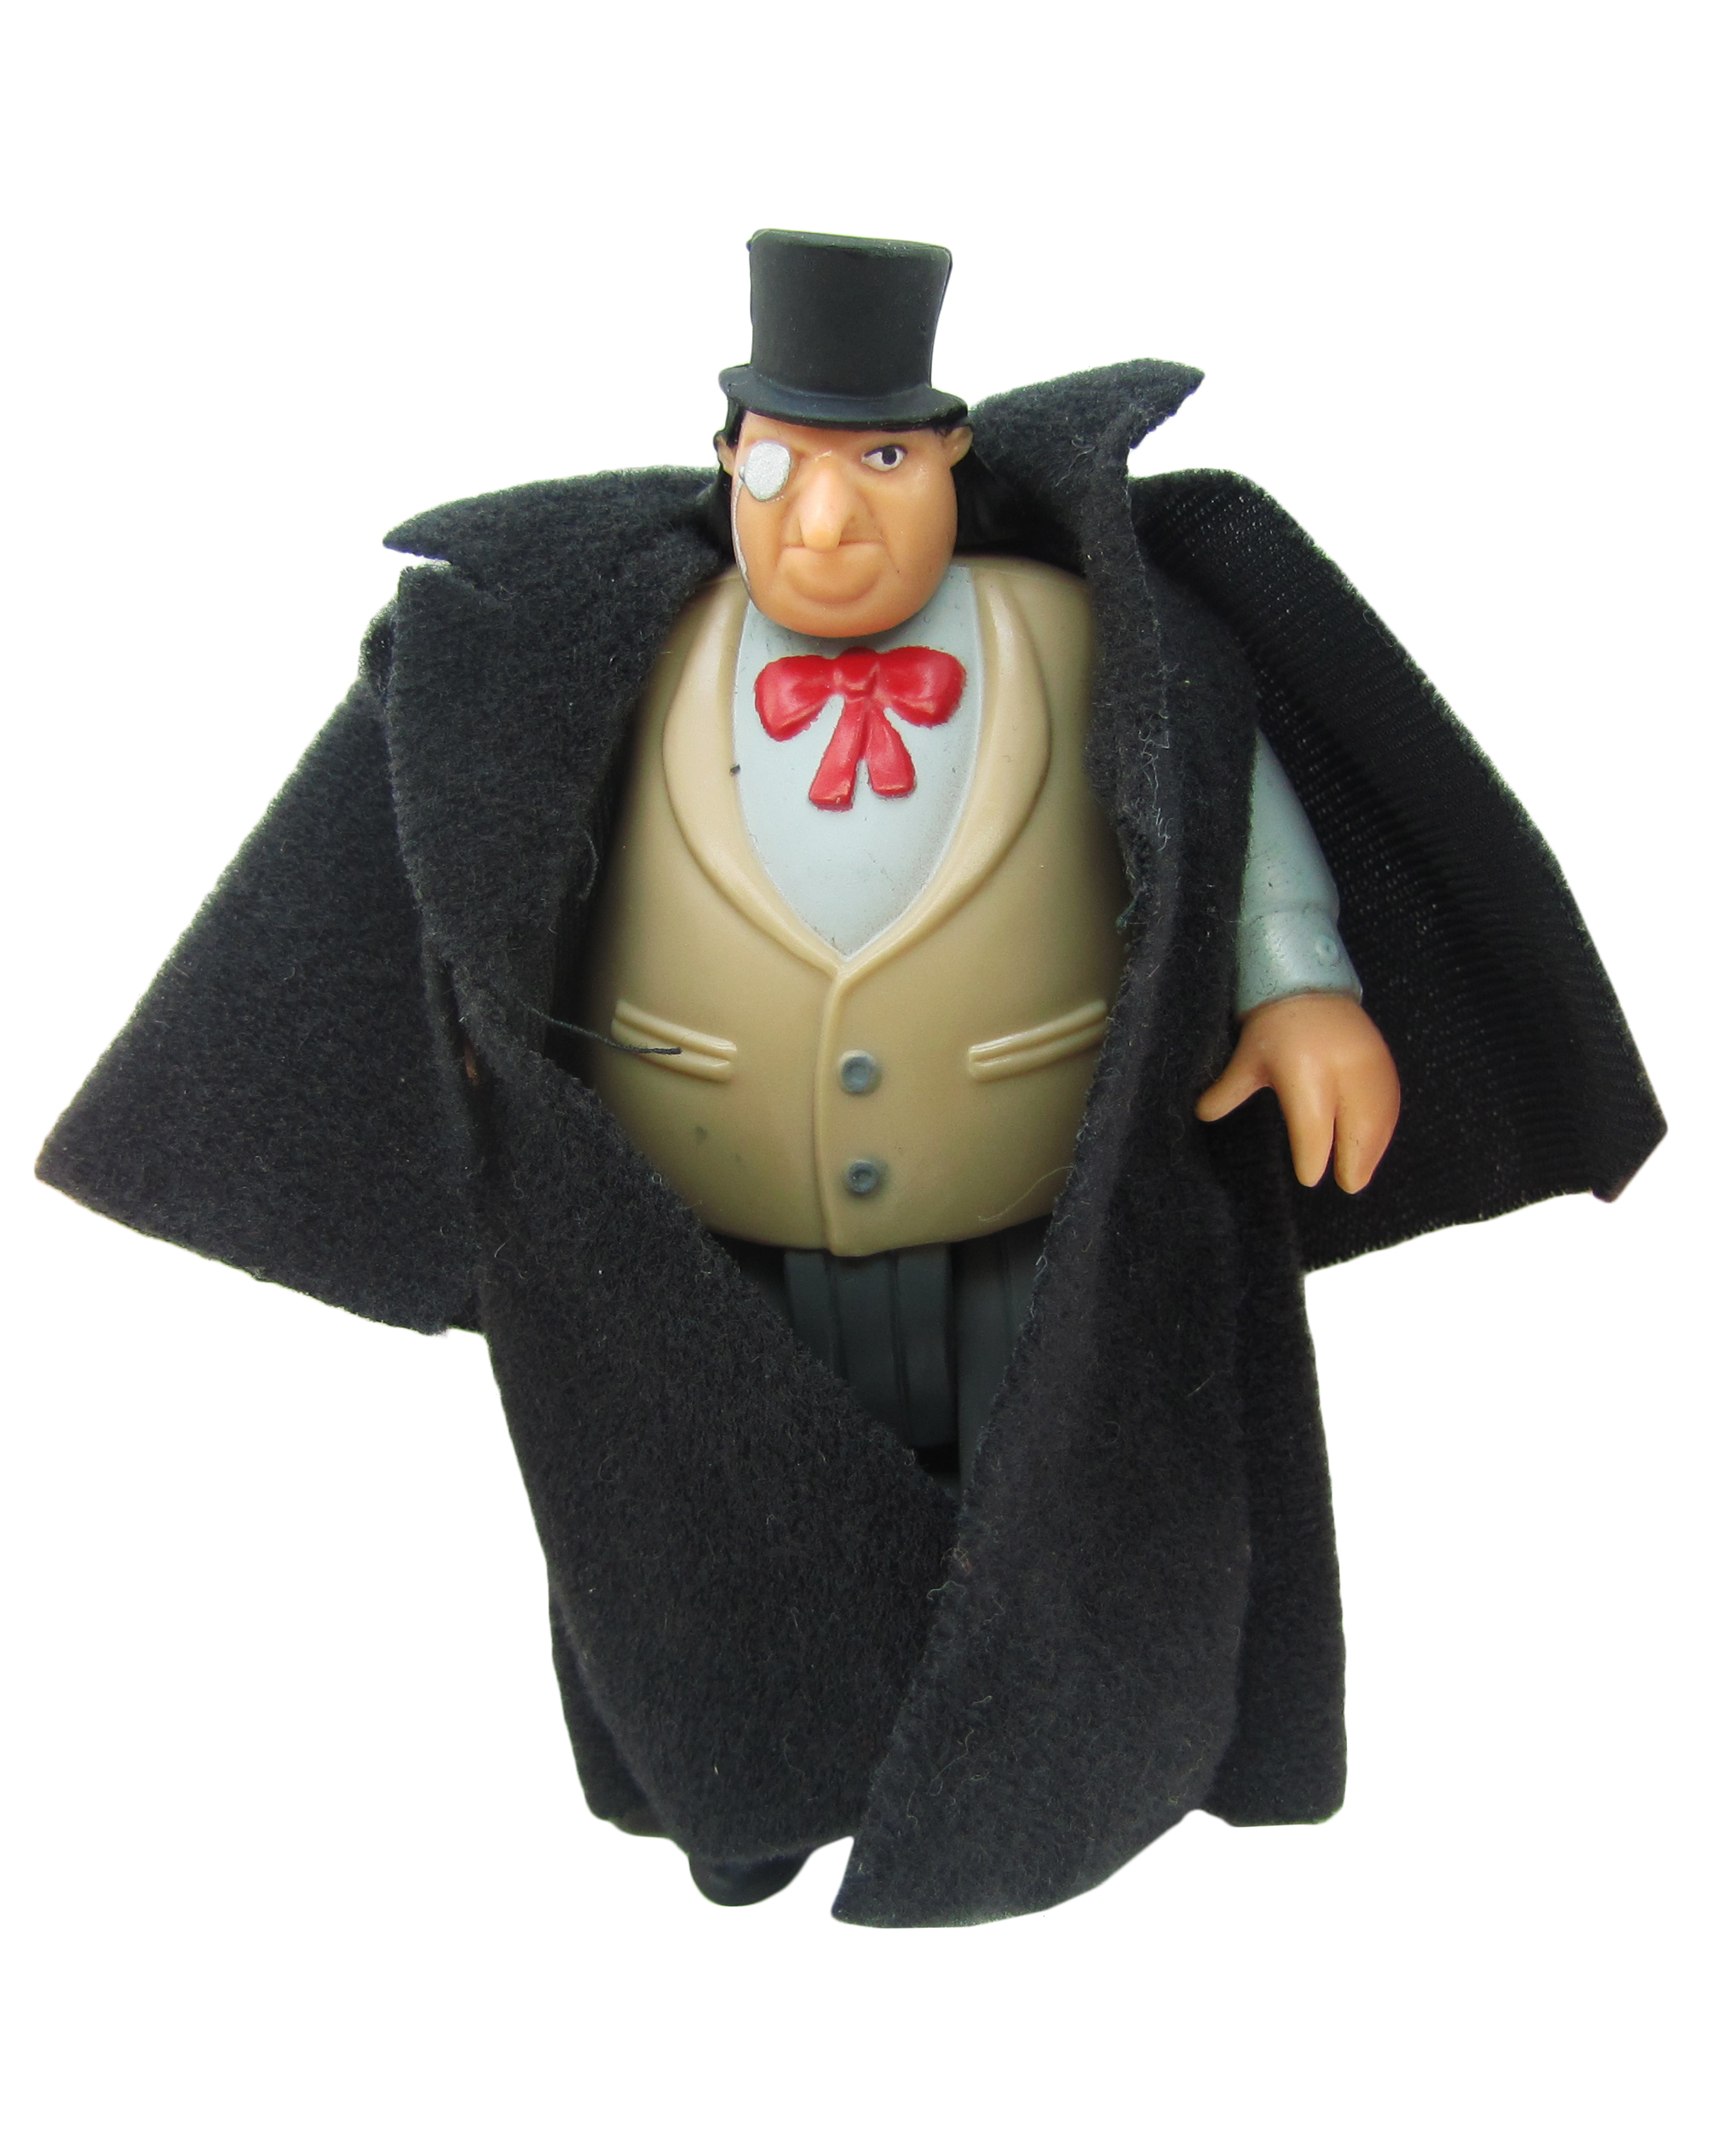 1992 Batman The Animated Series THE PENGUIN with Trench Coat Mint